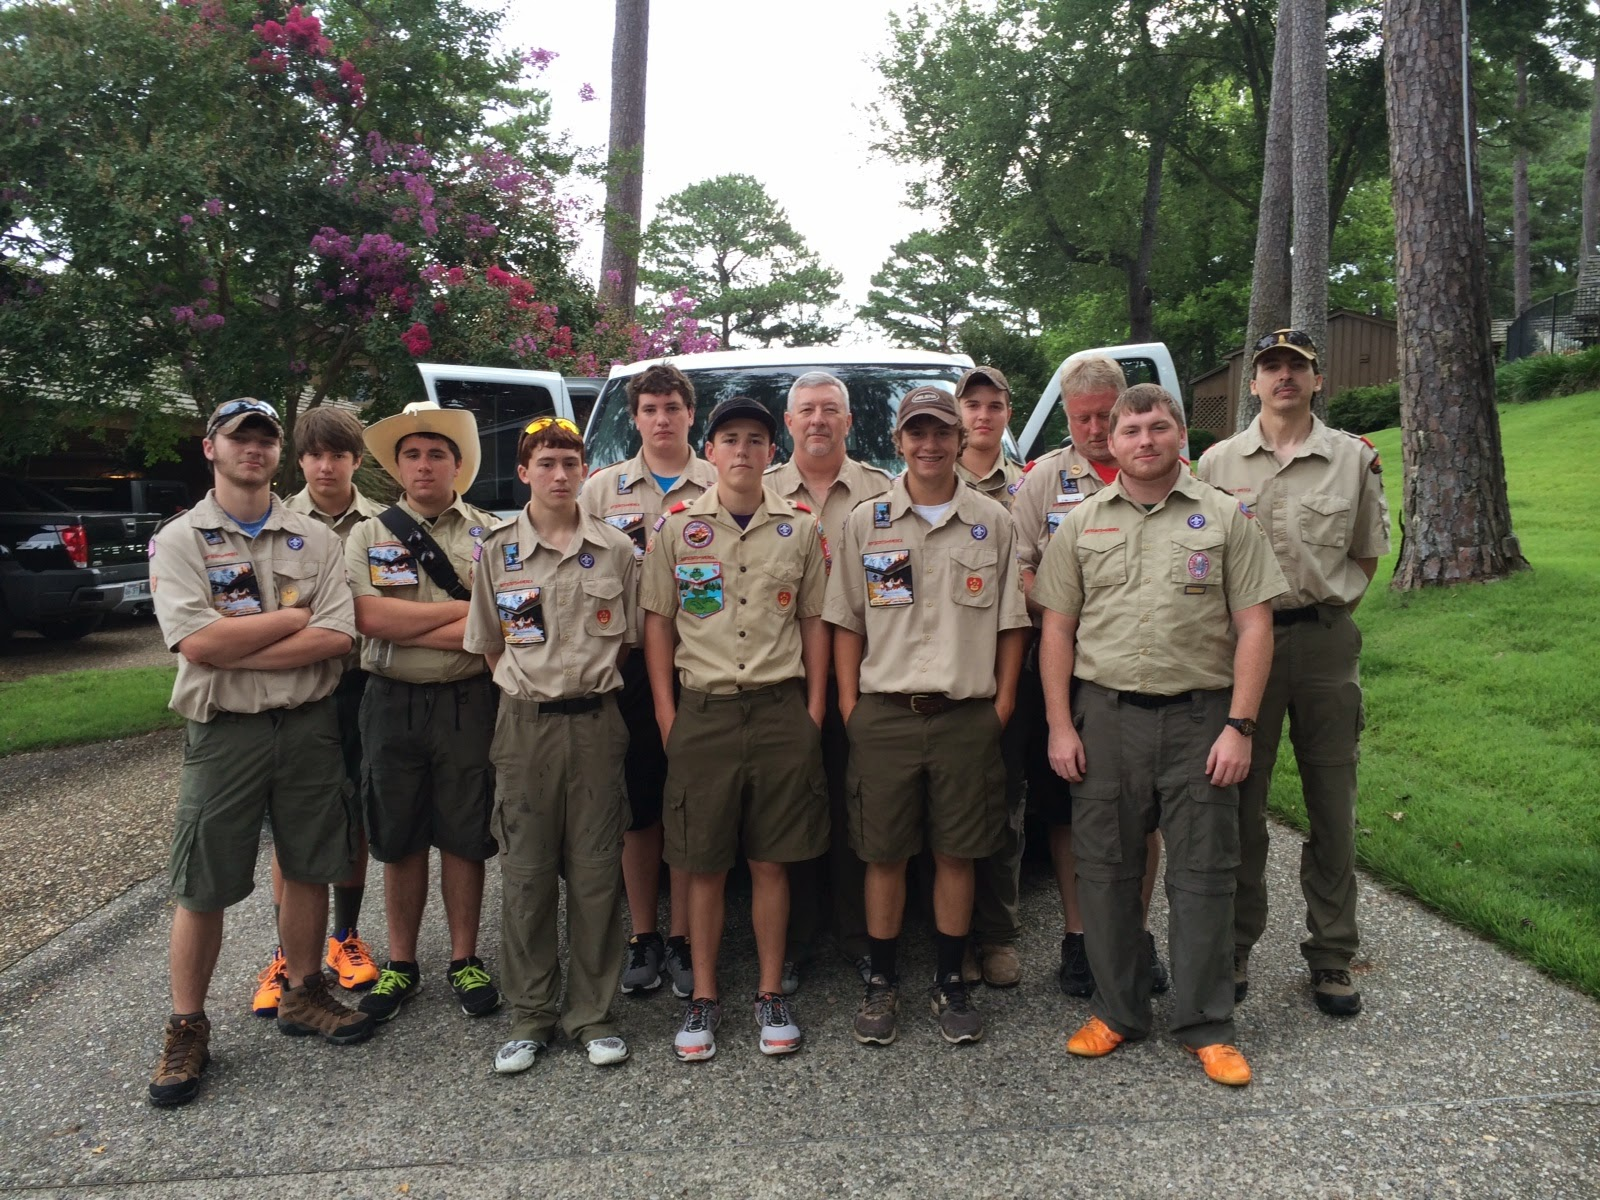 DeSoto Area Council's 2014 Philmont Contingent